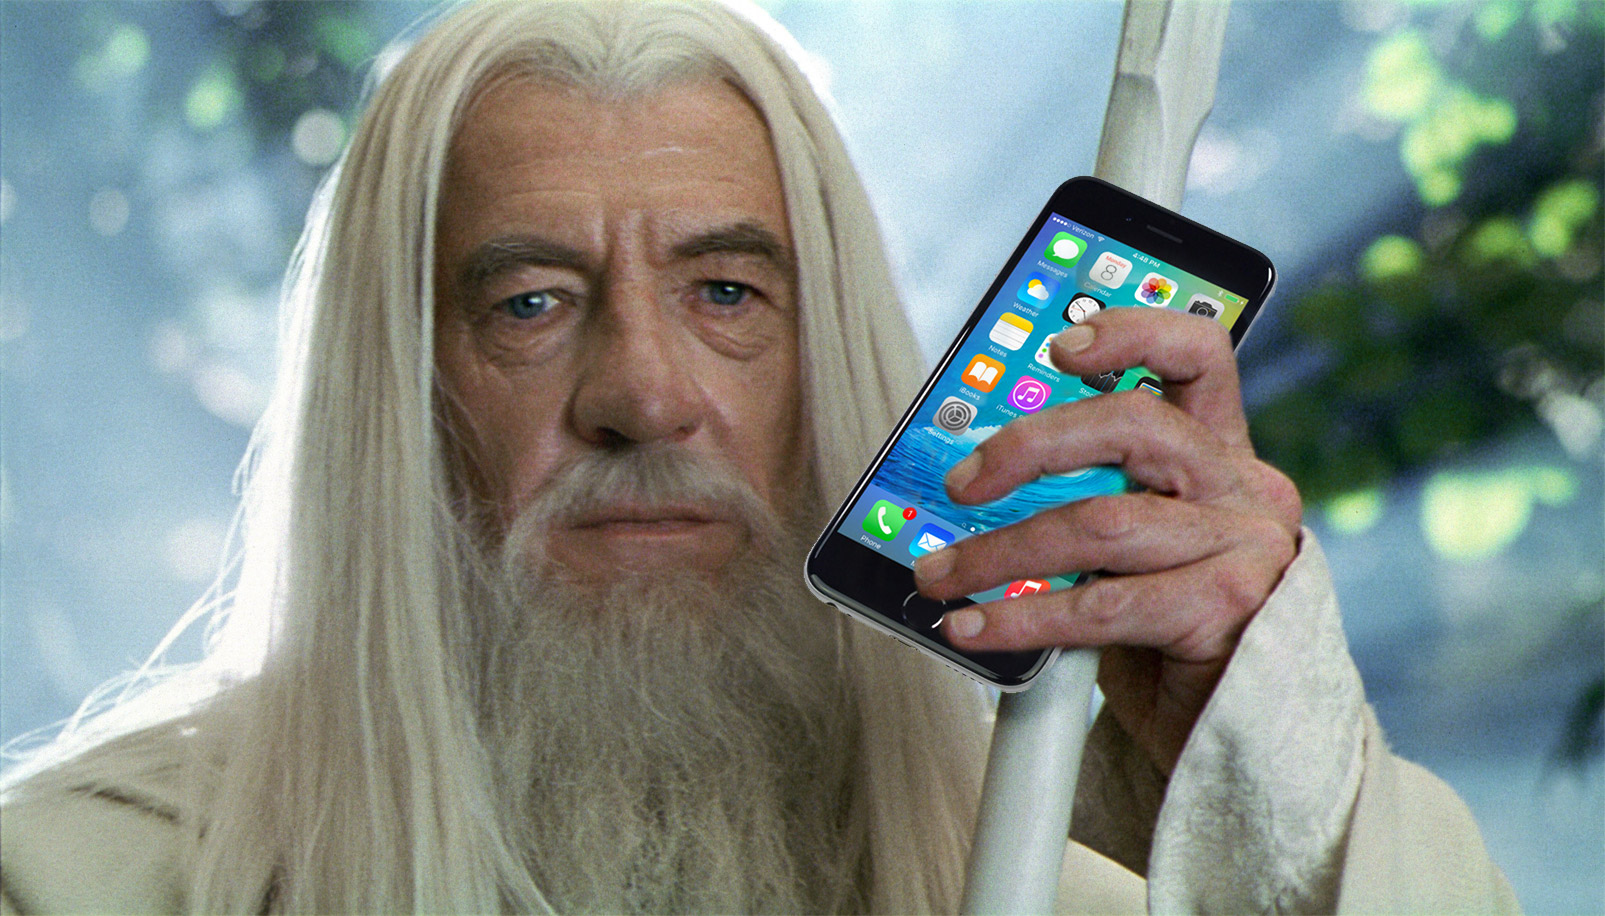 Gandalf with iphone.jpg